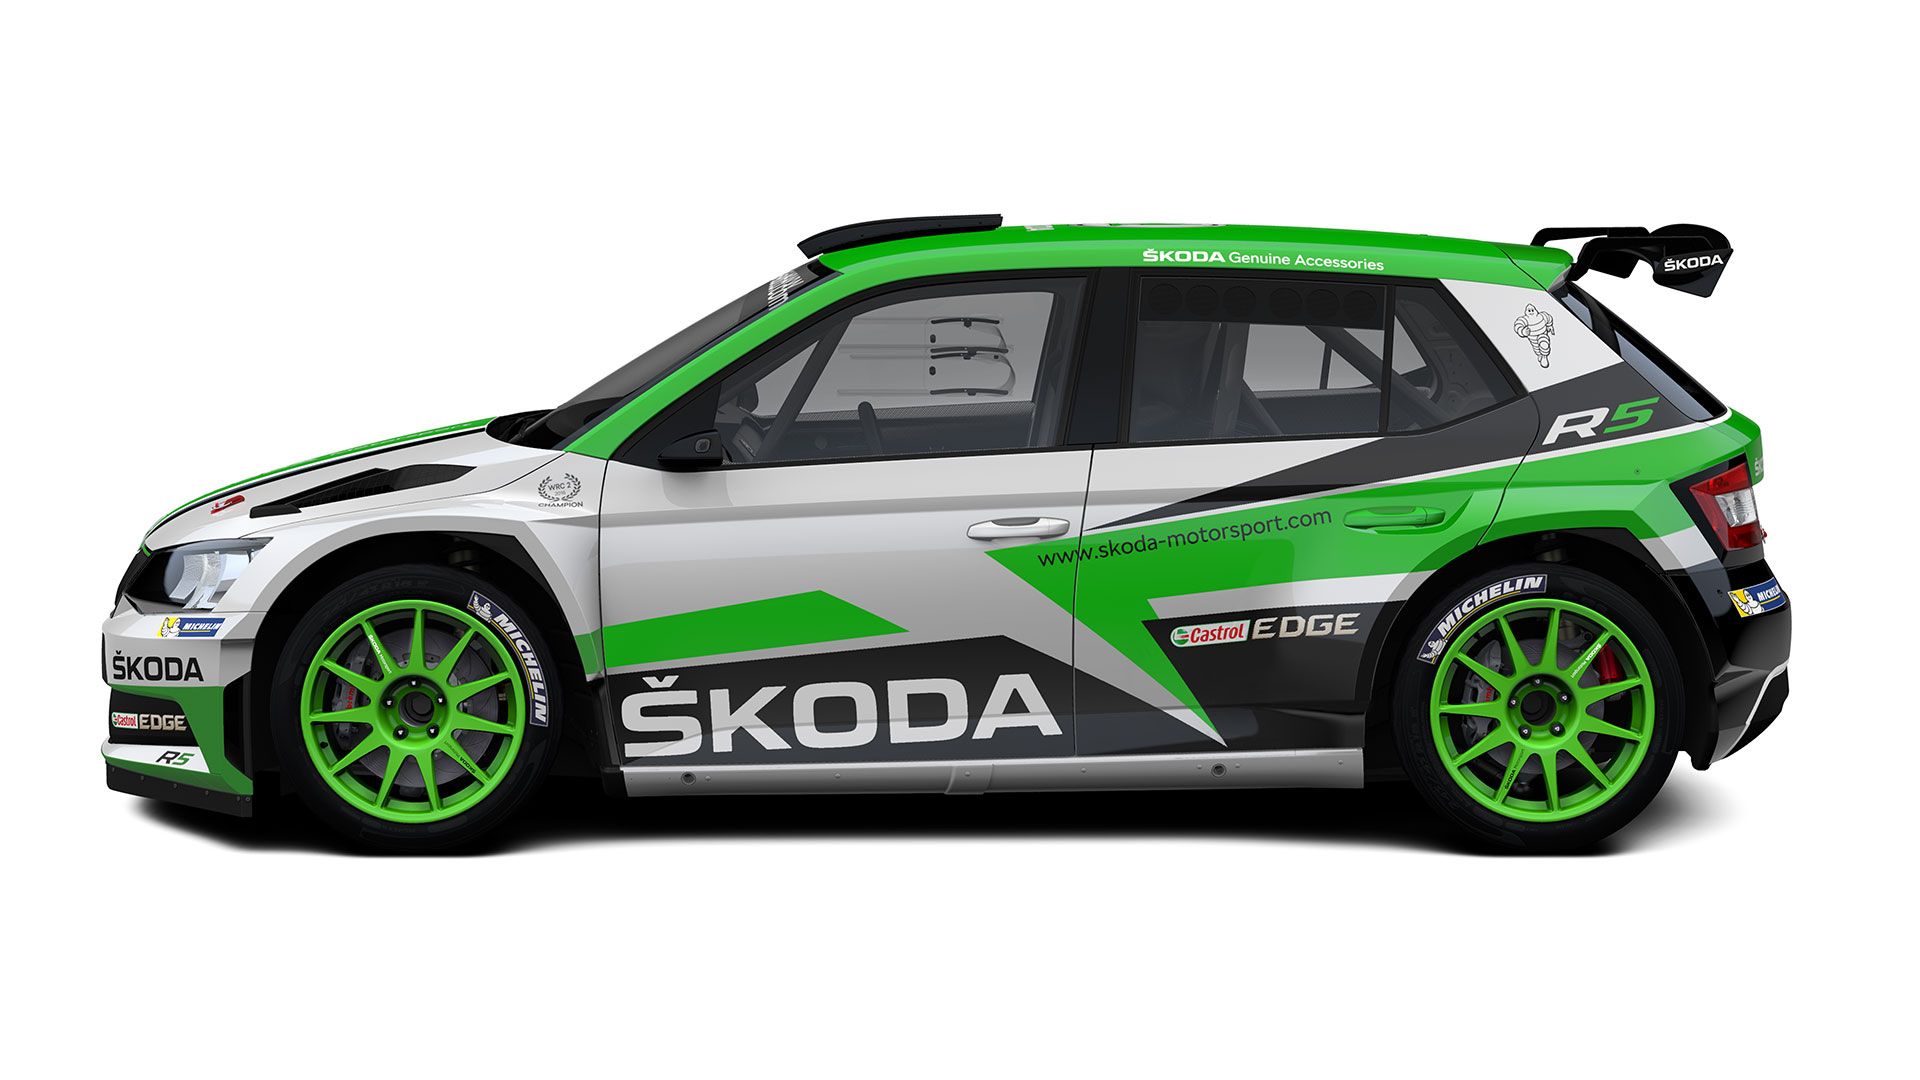 Wrc Sweden Home Rally For Tidemand And Andersson Koda